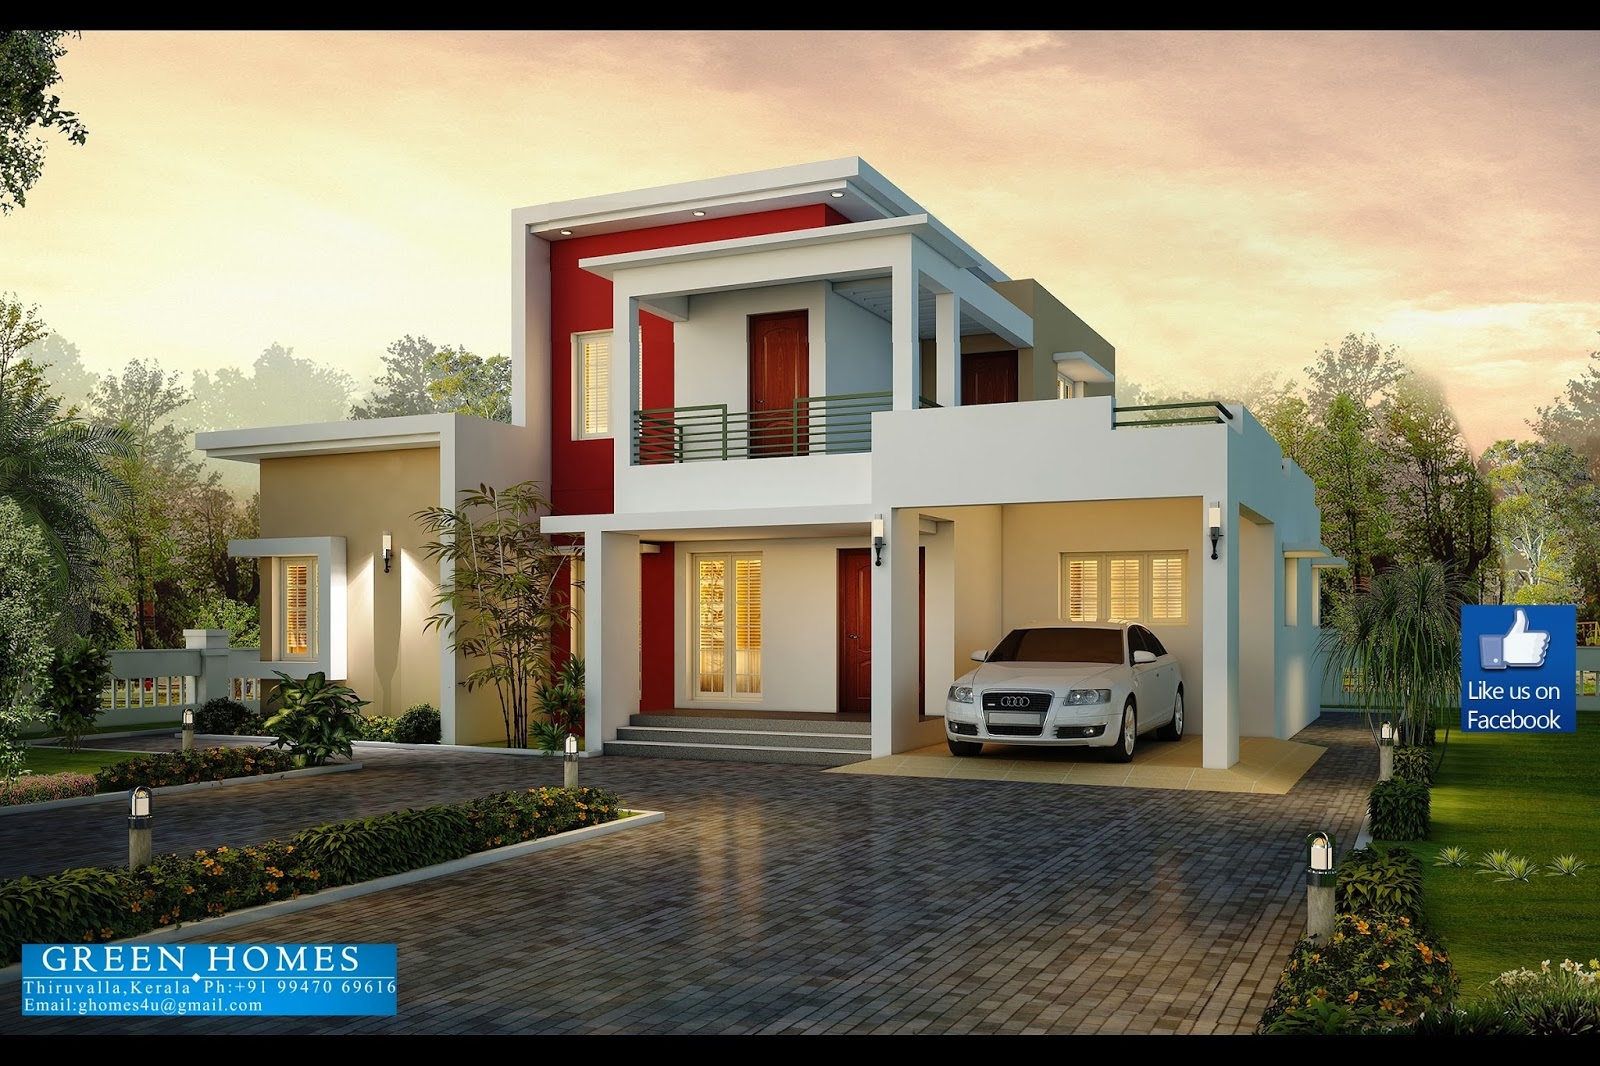 Green Homes: Awesome 3 Bedroom Modern House Design